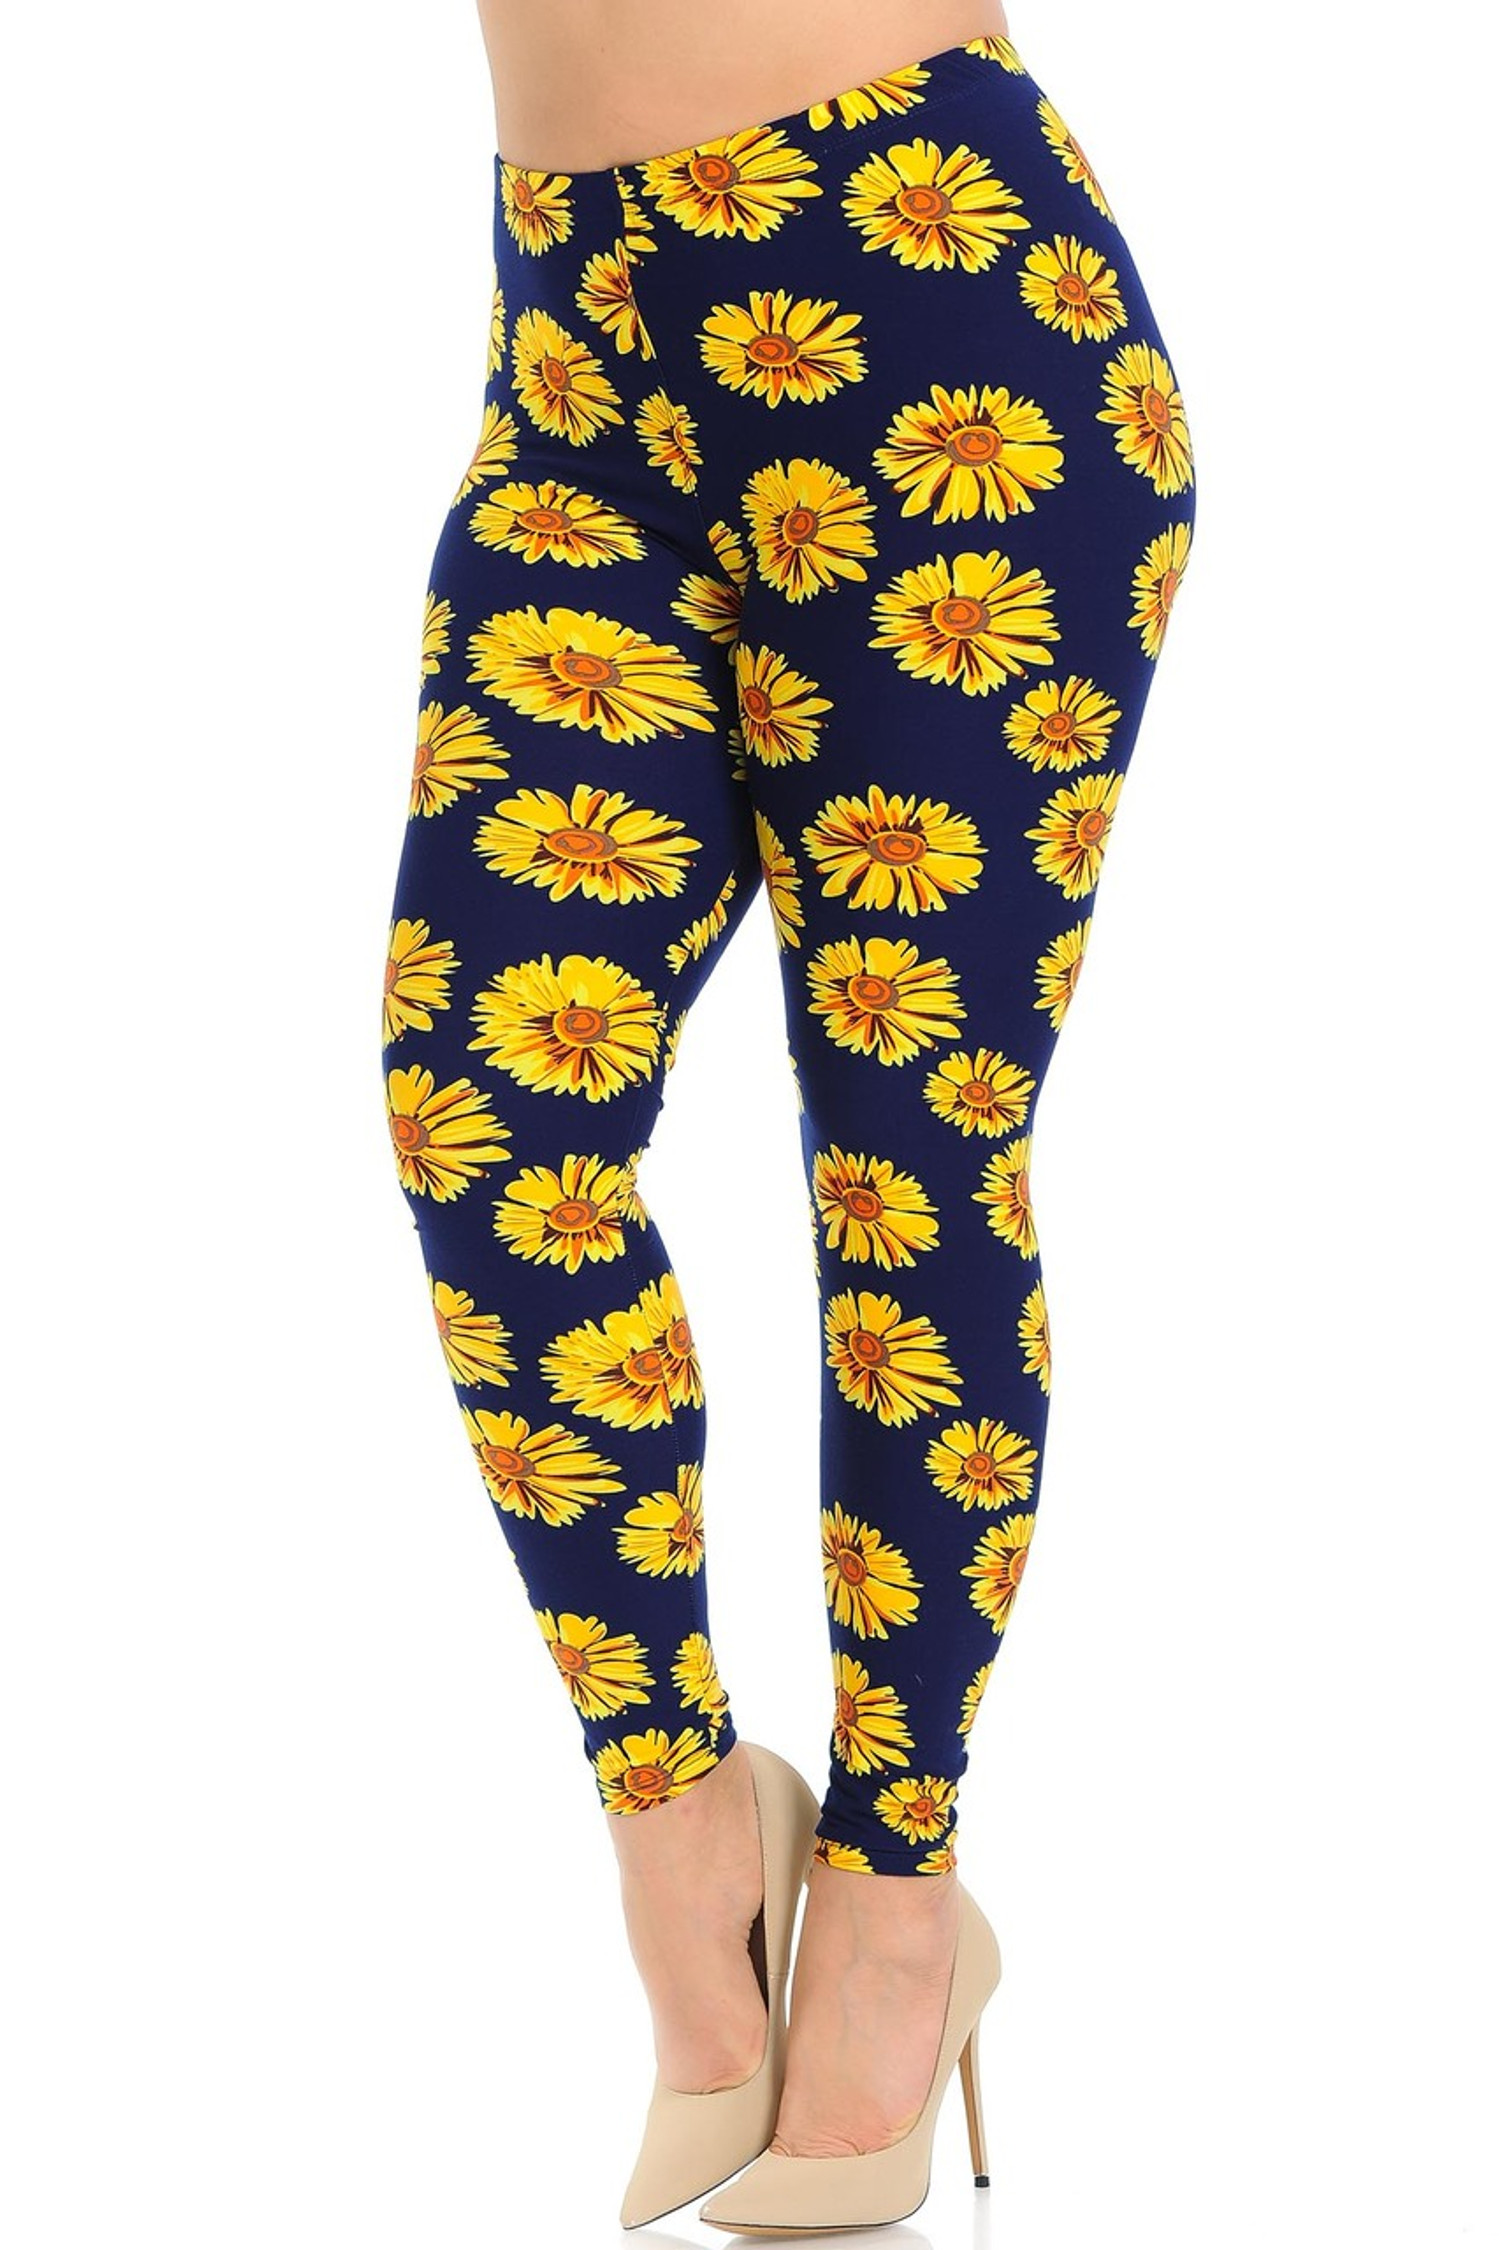 Brushed Summer Daisy Extra Plus Size Leggings - 3X-5X